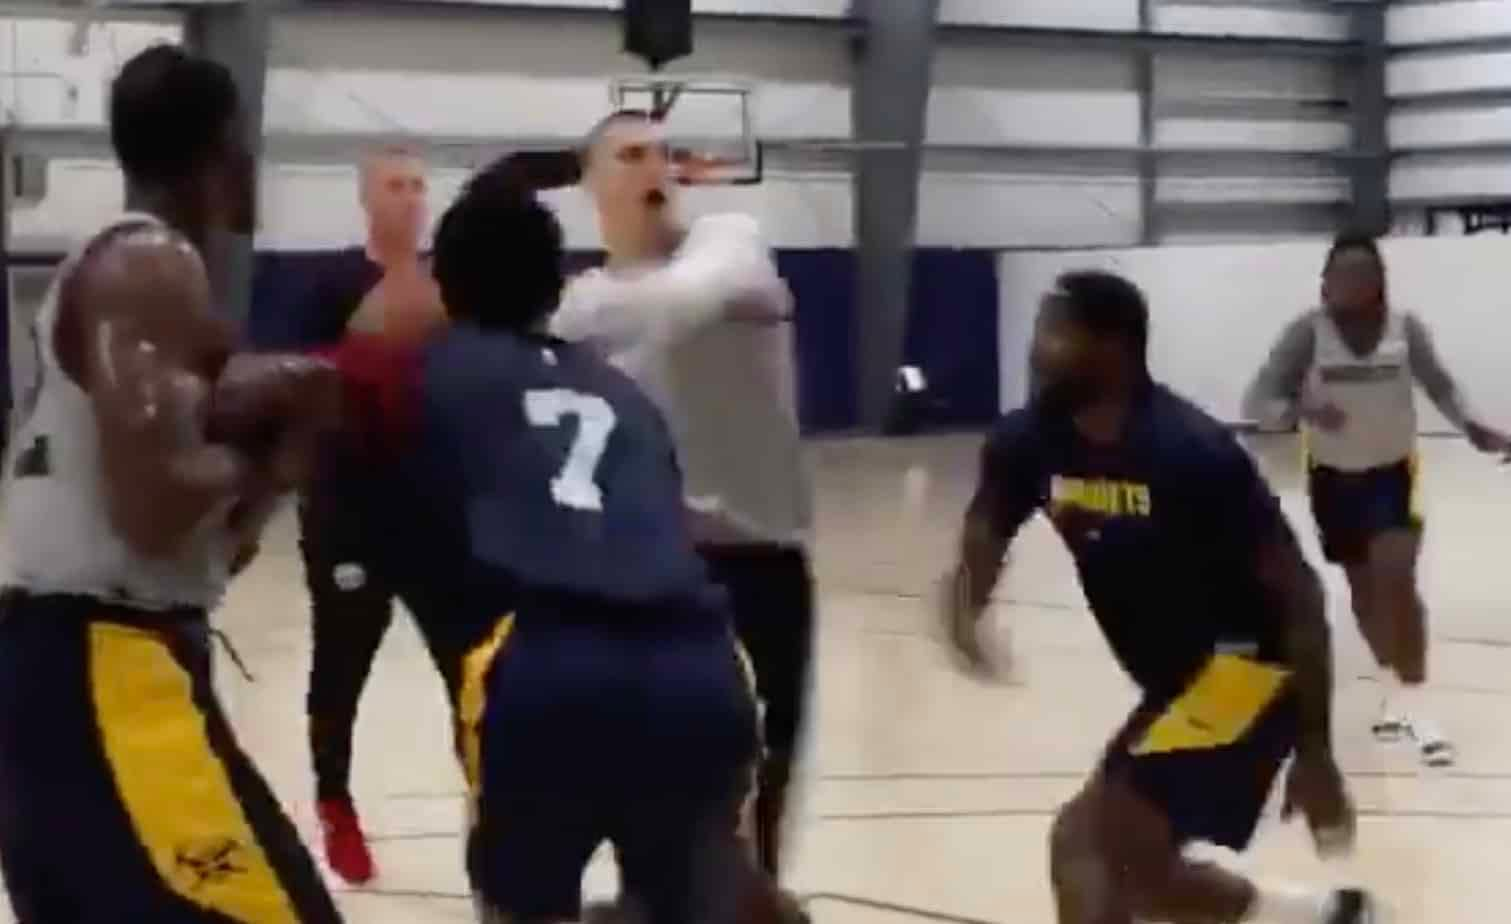 After showing off the new skinny Nikola Jokic at a basketball practice in Europe, the Nuggets star showed off some fancy new moves in Orlando